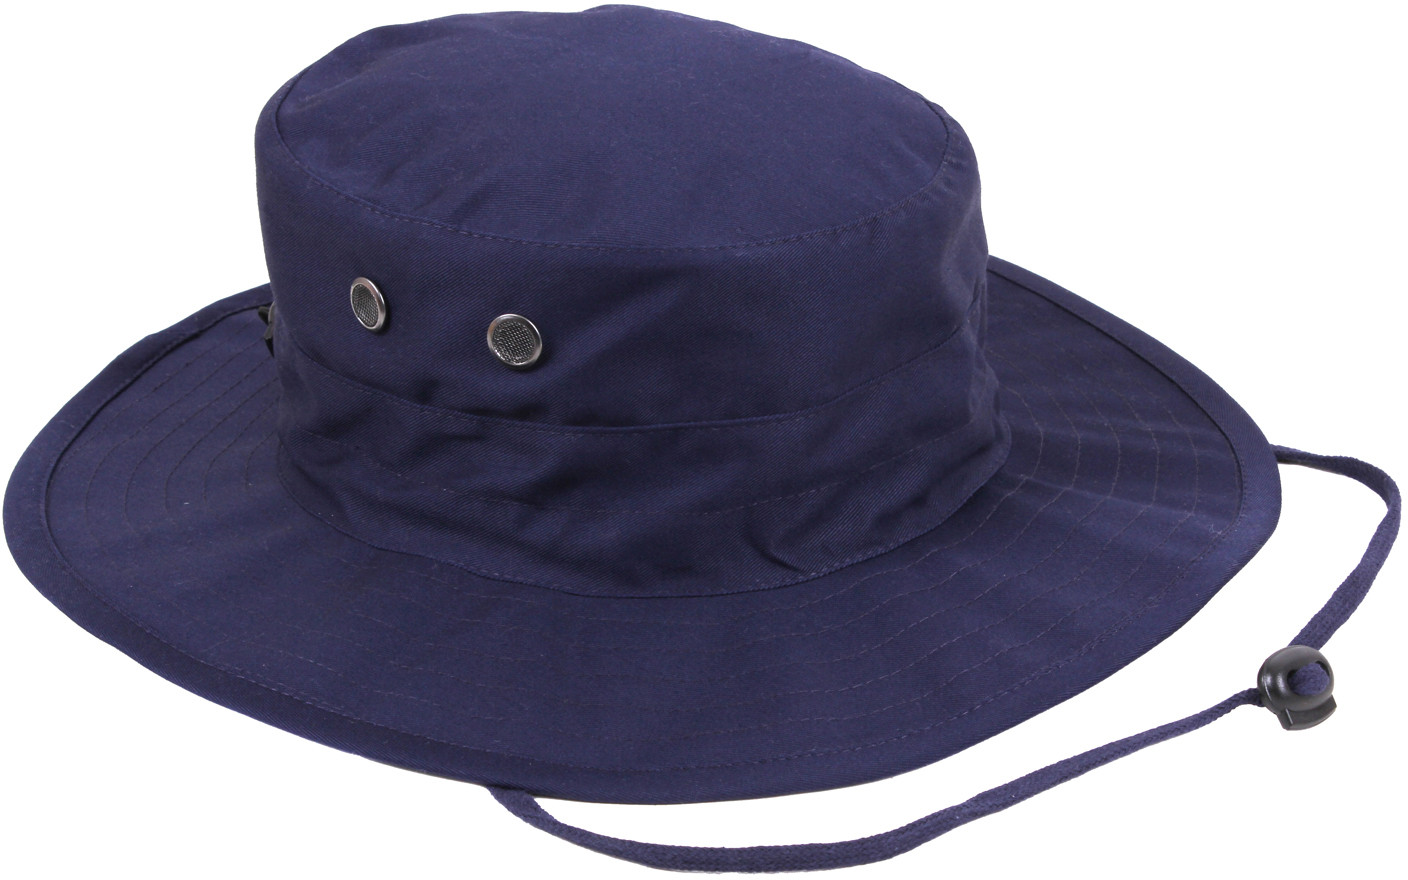 c4864c18e58 More Views. Navy Blue Military Adjustable Hunting Wide Brim Jungle Boonie  Hat